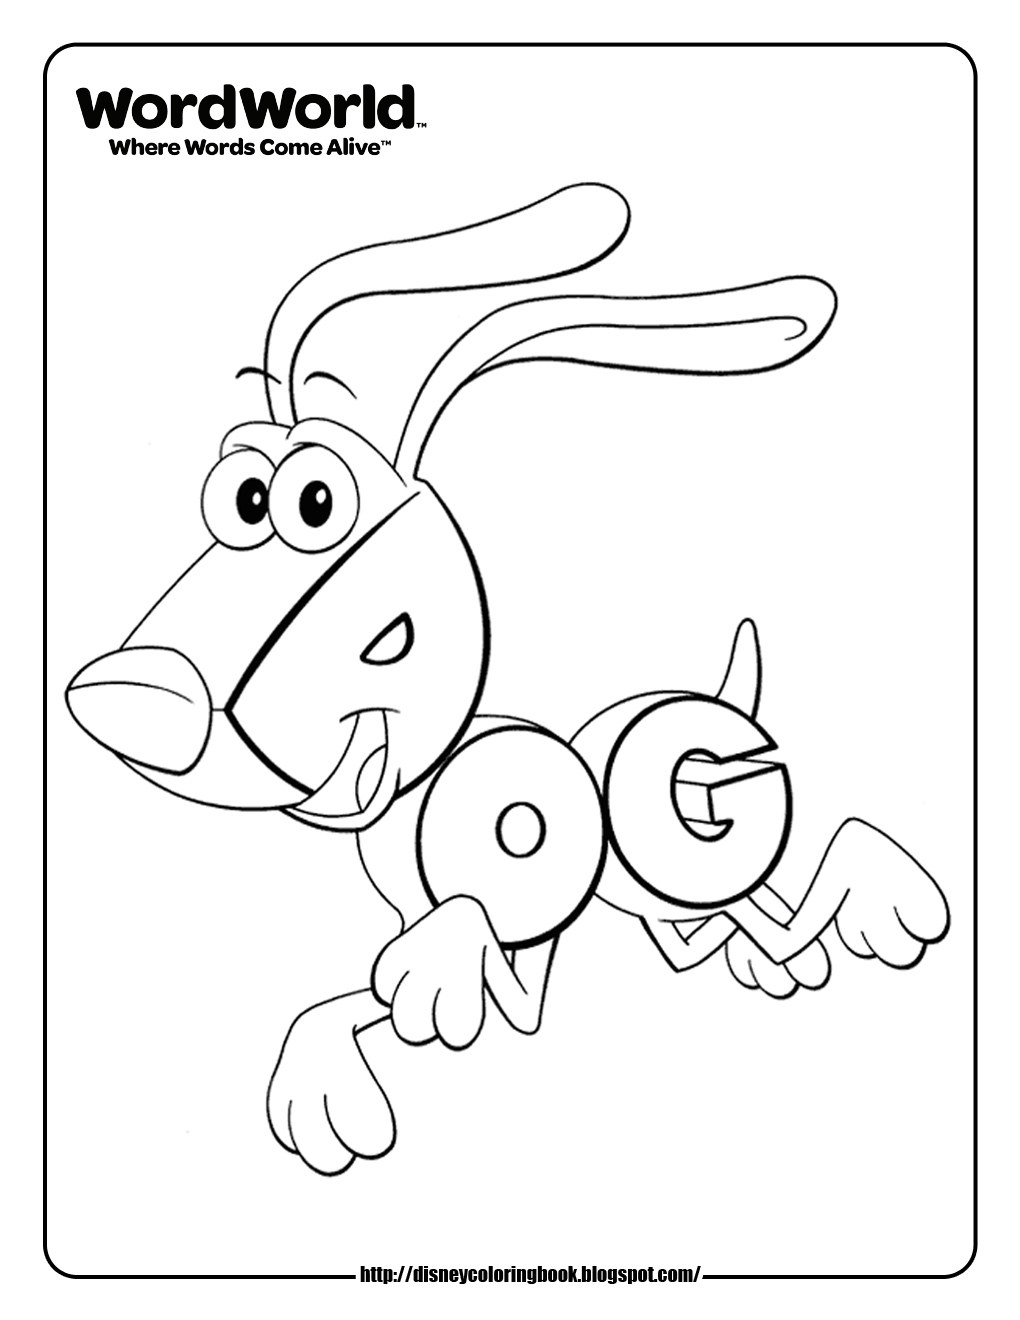 Wordworld 1 Free Disney Coloring Sheets Learn To Coloring Word Coloring Pages